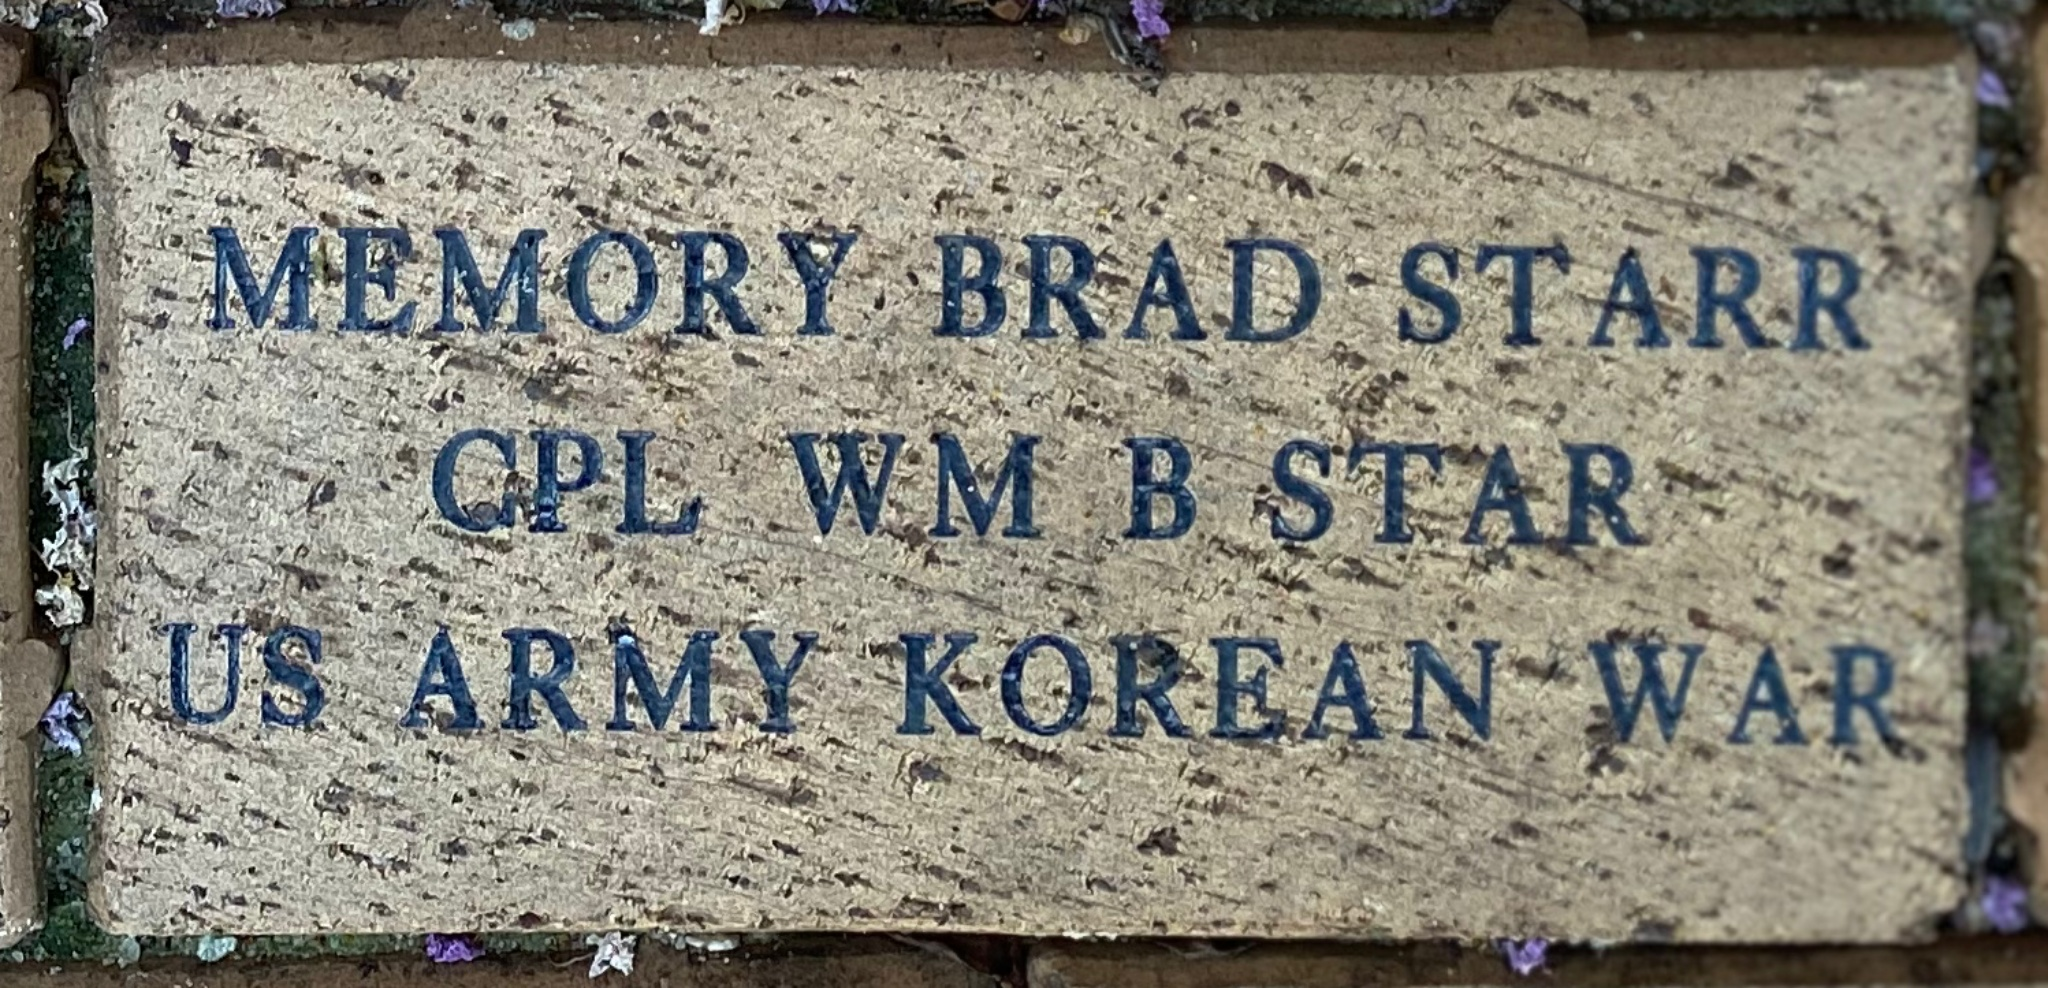 MEMORY BRAD STARR CPL WM B STARR US ARMY KOREAN WAR